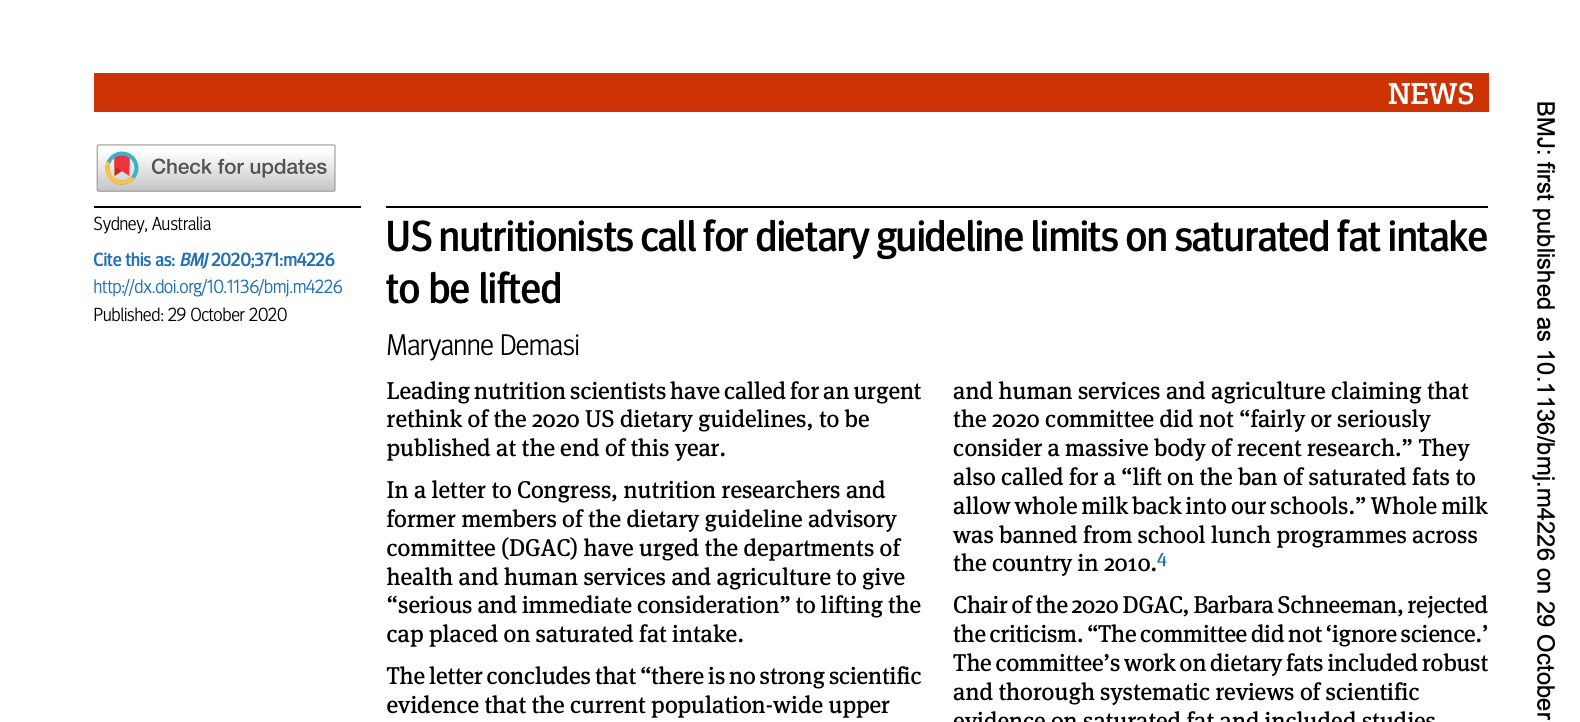 """Demasi, Maryanne. """"US Nutritionists Call for Dietary Guideline Limits on Saturated Fat Intake to Be Lifted.""""  BMJ , October 29, 2020, m4226.  https://doi.org/10.1136/bmj.m4226 ."""